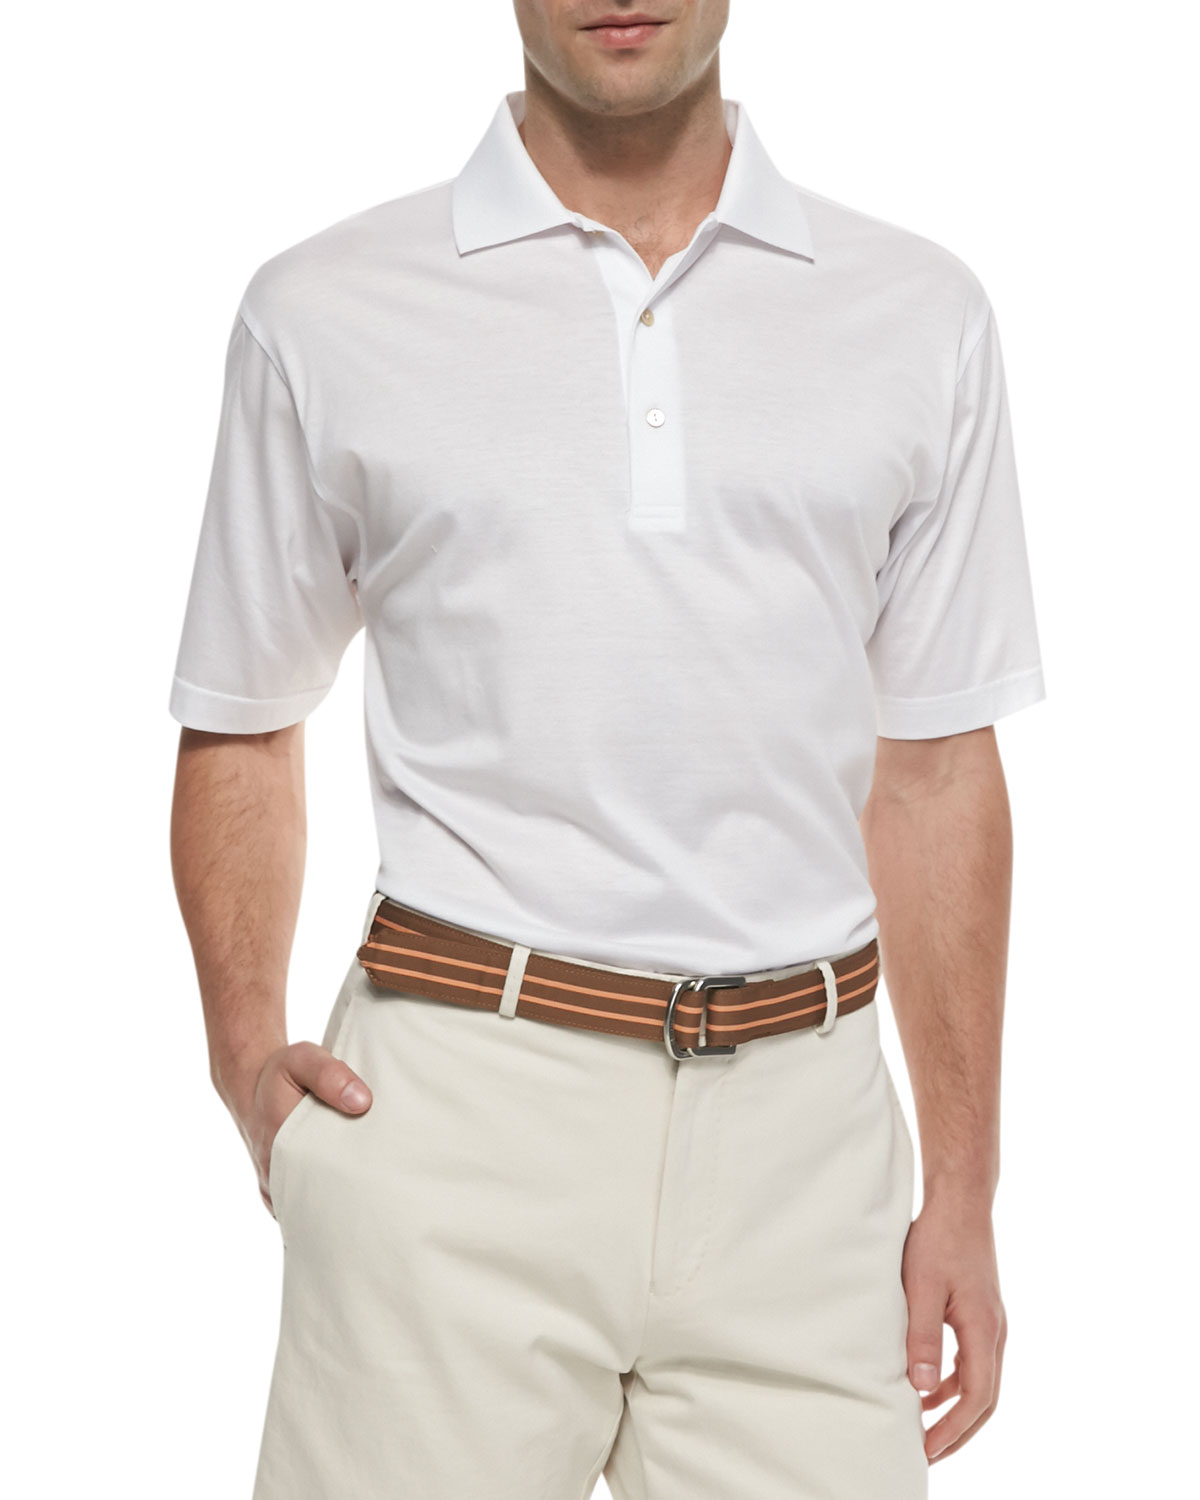 Peter millar cotton short sleeve polo in white for men lyst for Peter millar polo shirts